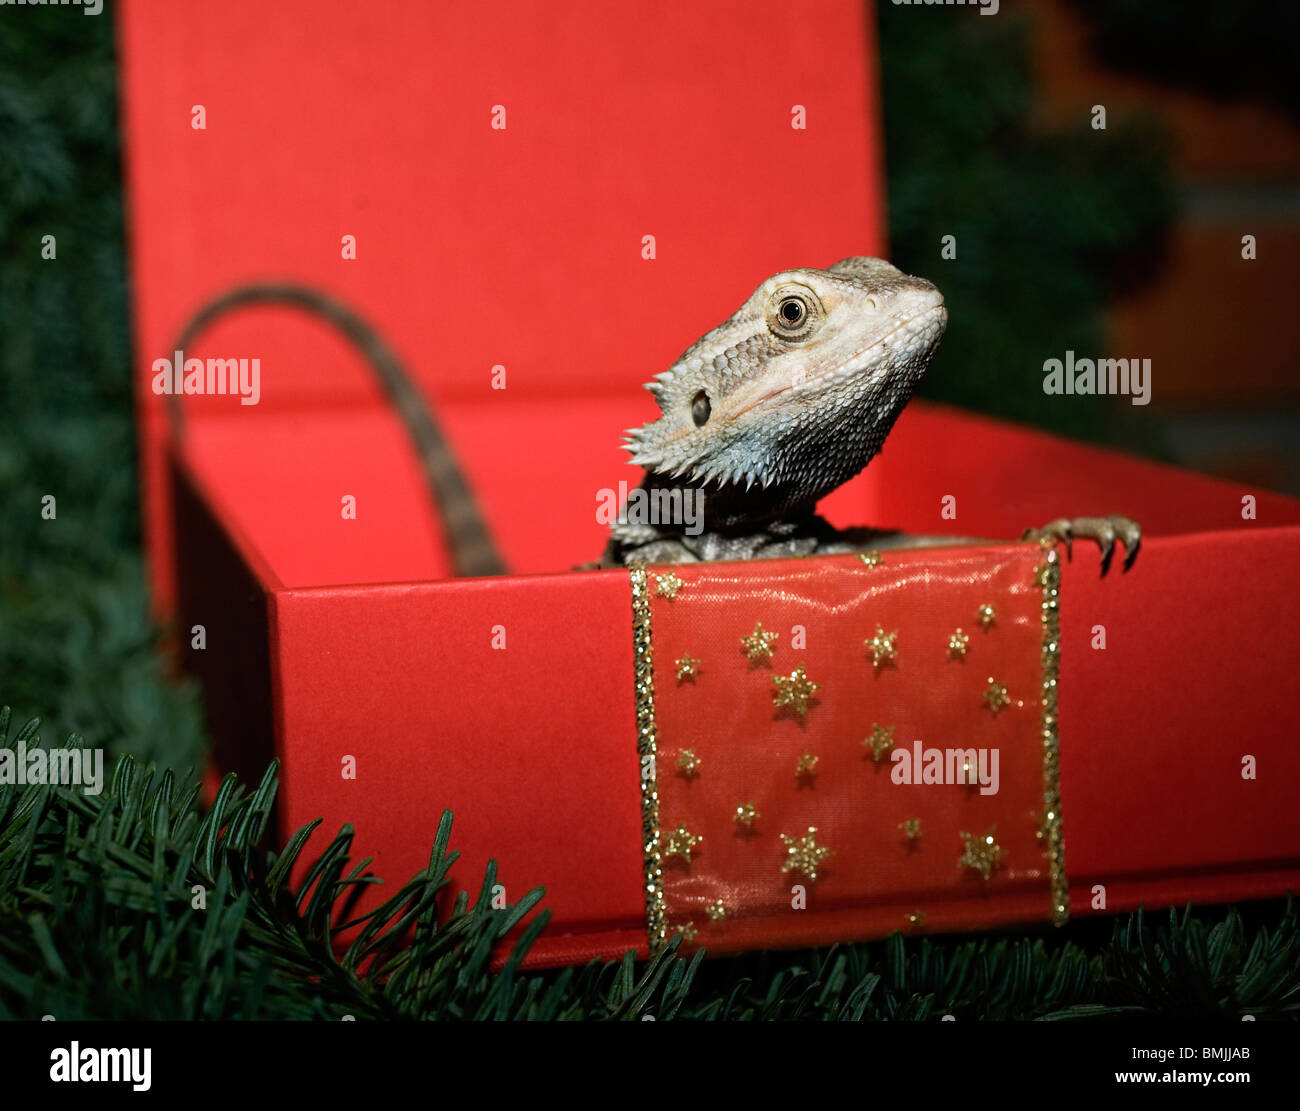 Scandinavia, Sweden, Stockholm, Bearded dragon in box, close-up - Stock Image